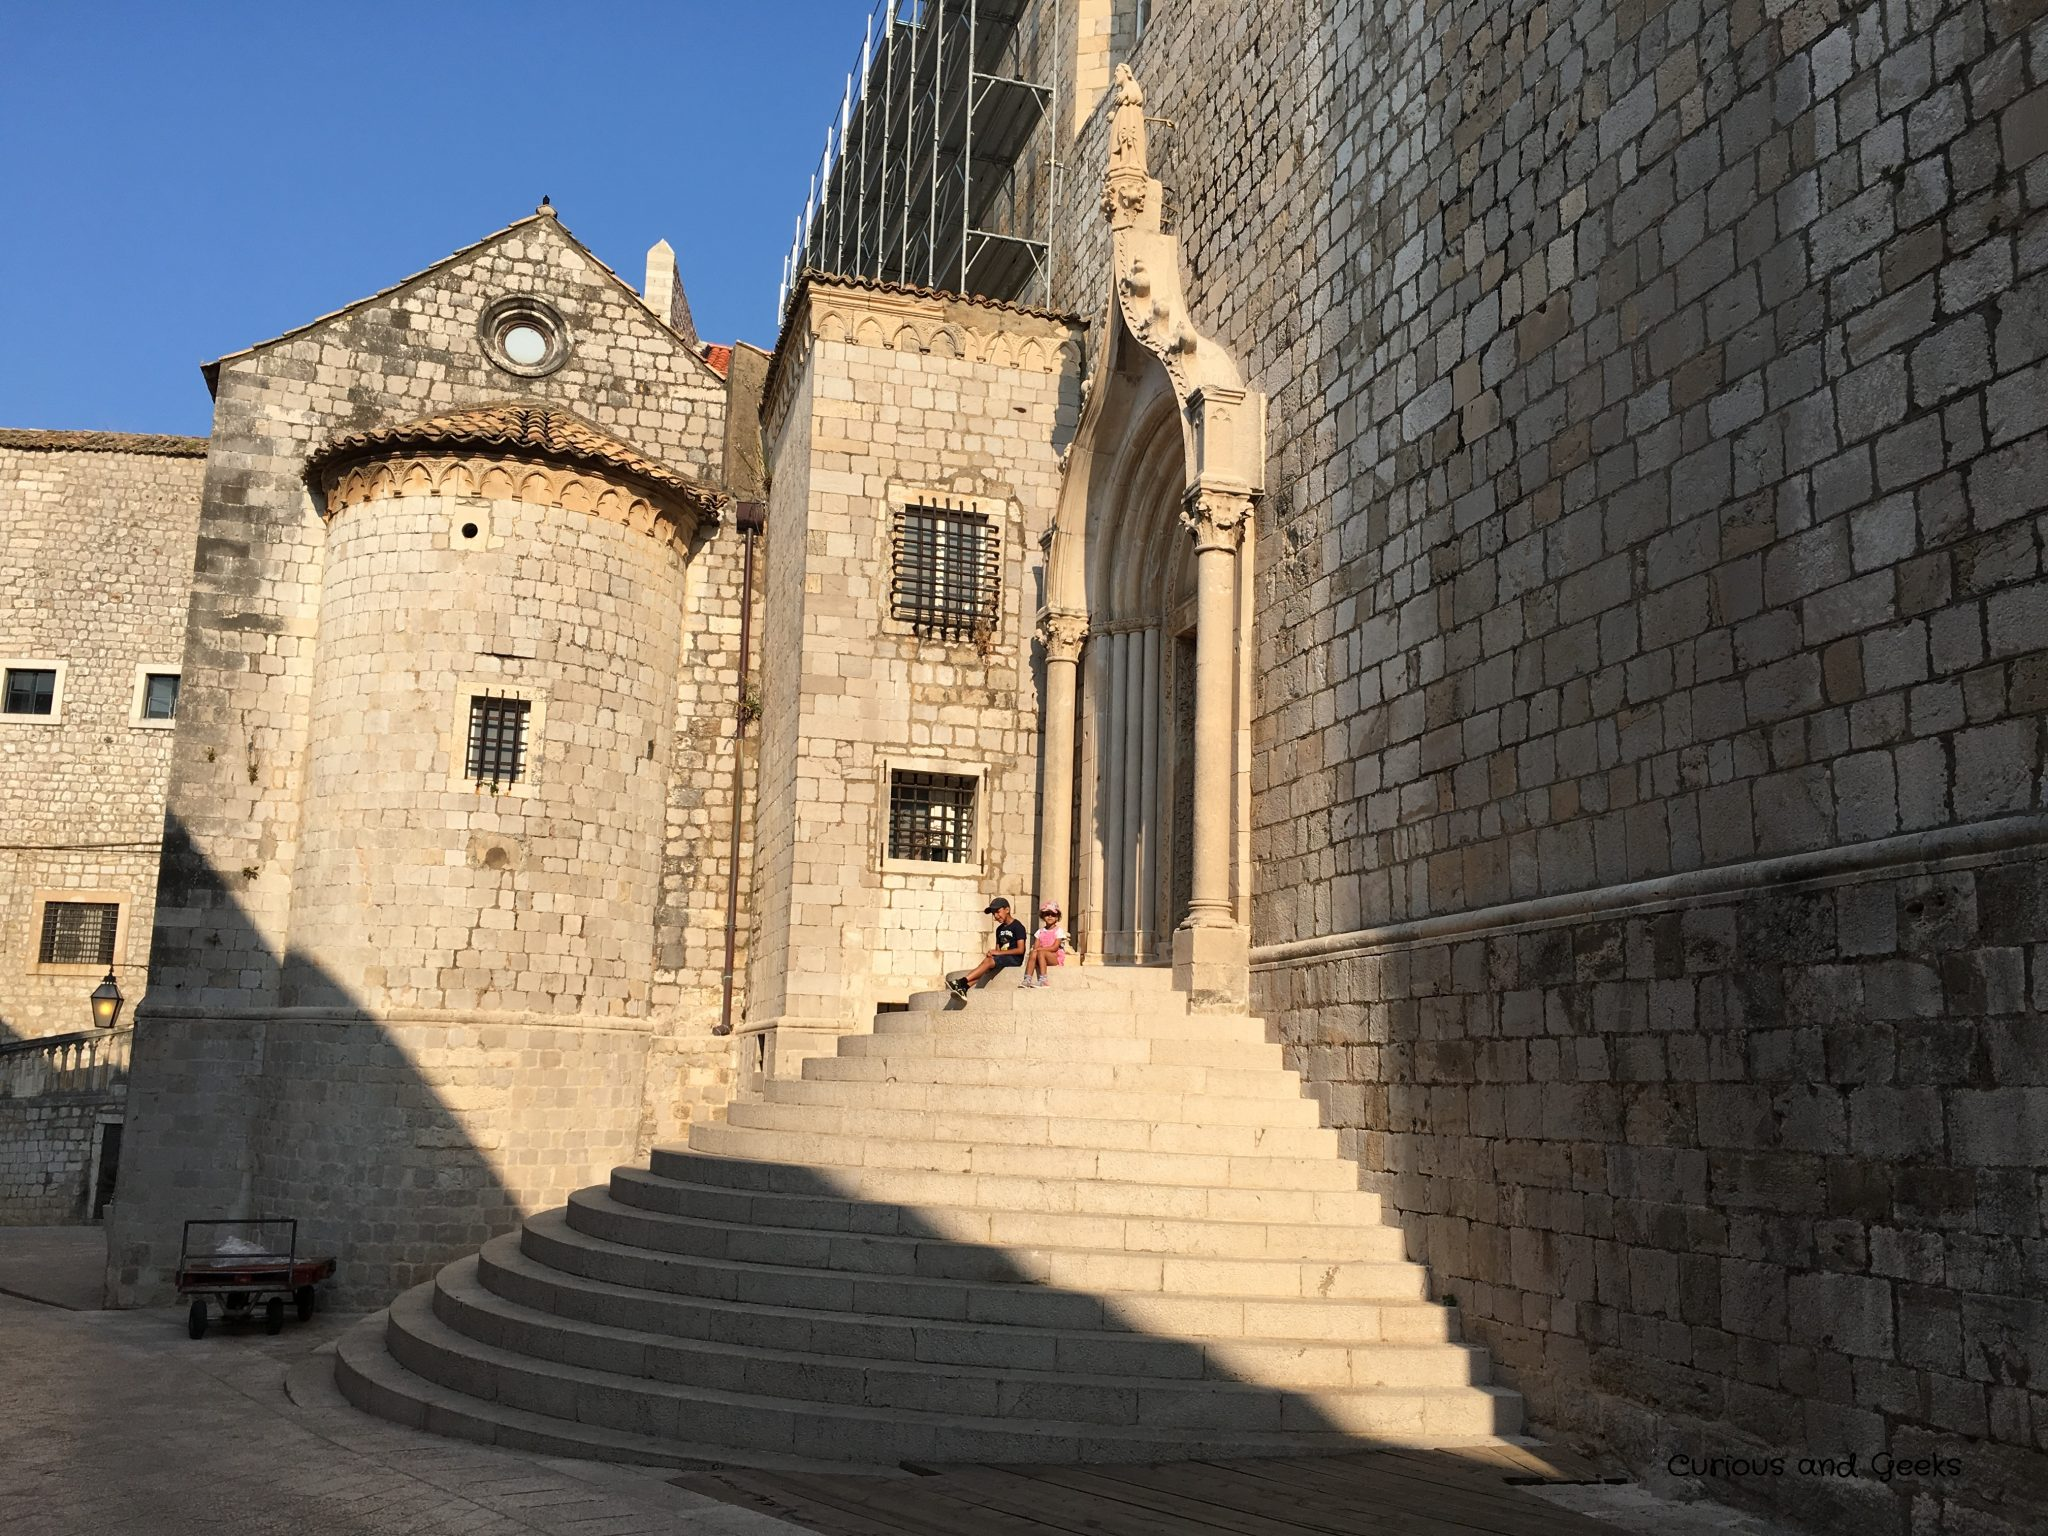 Dominican Monsatery in Dubrovnik old town - filming location for s02e05